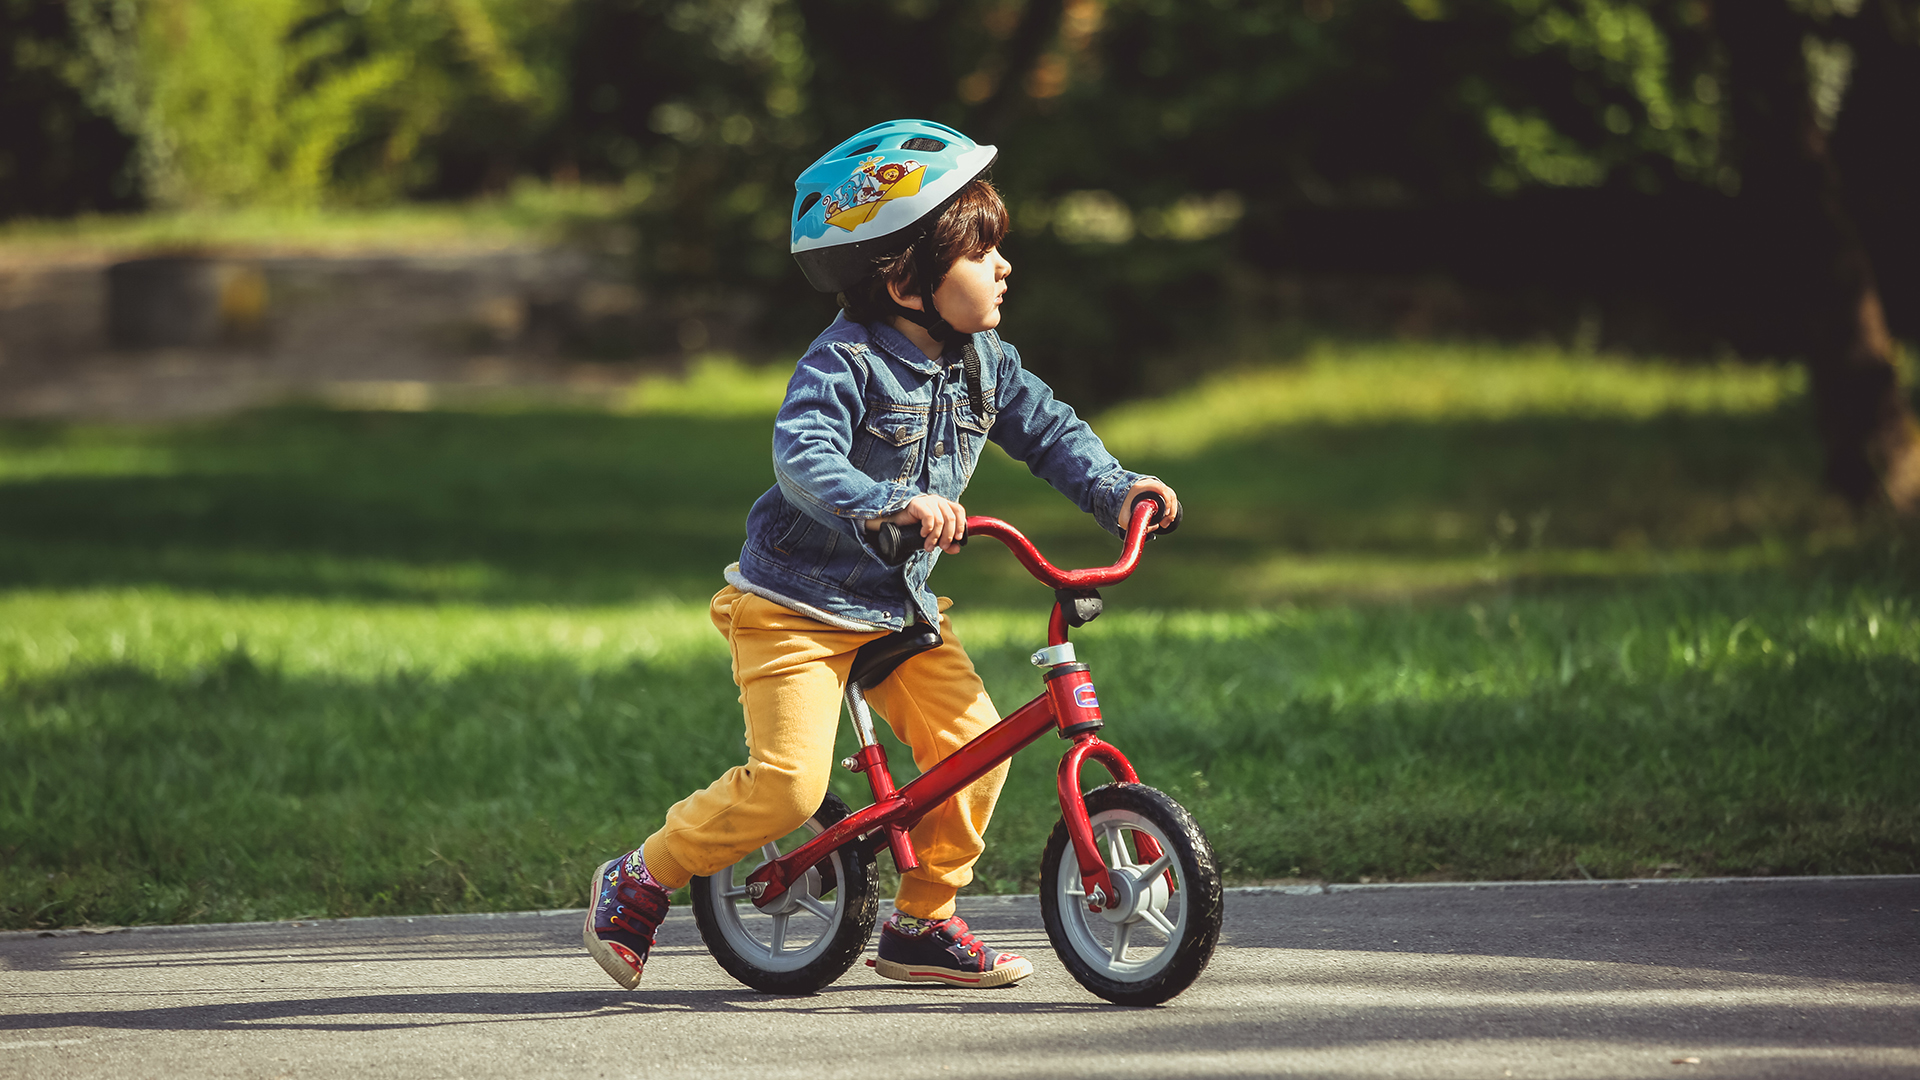 They'll Feel Safe Riding These Balance Bikes for 3-Year-Olds